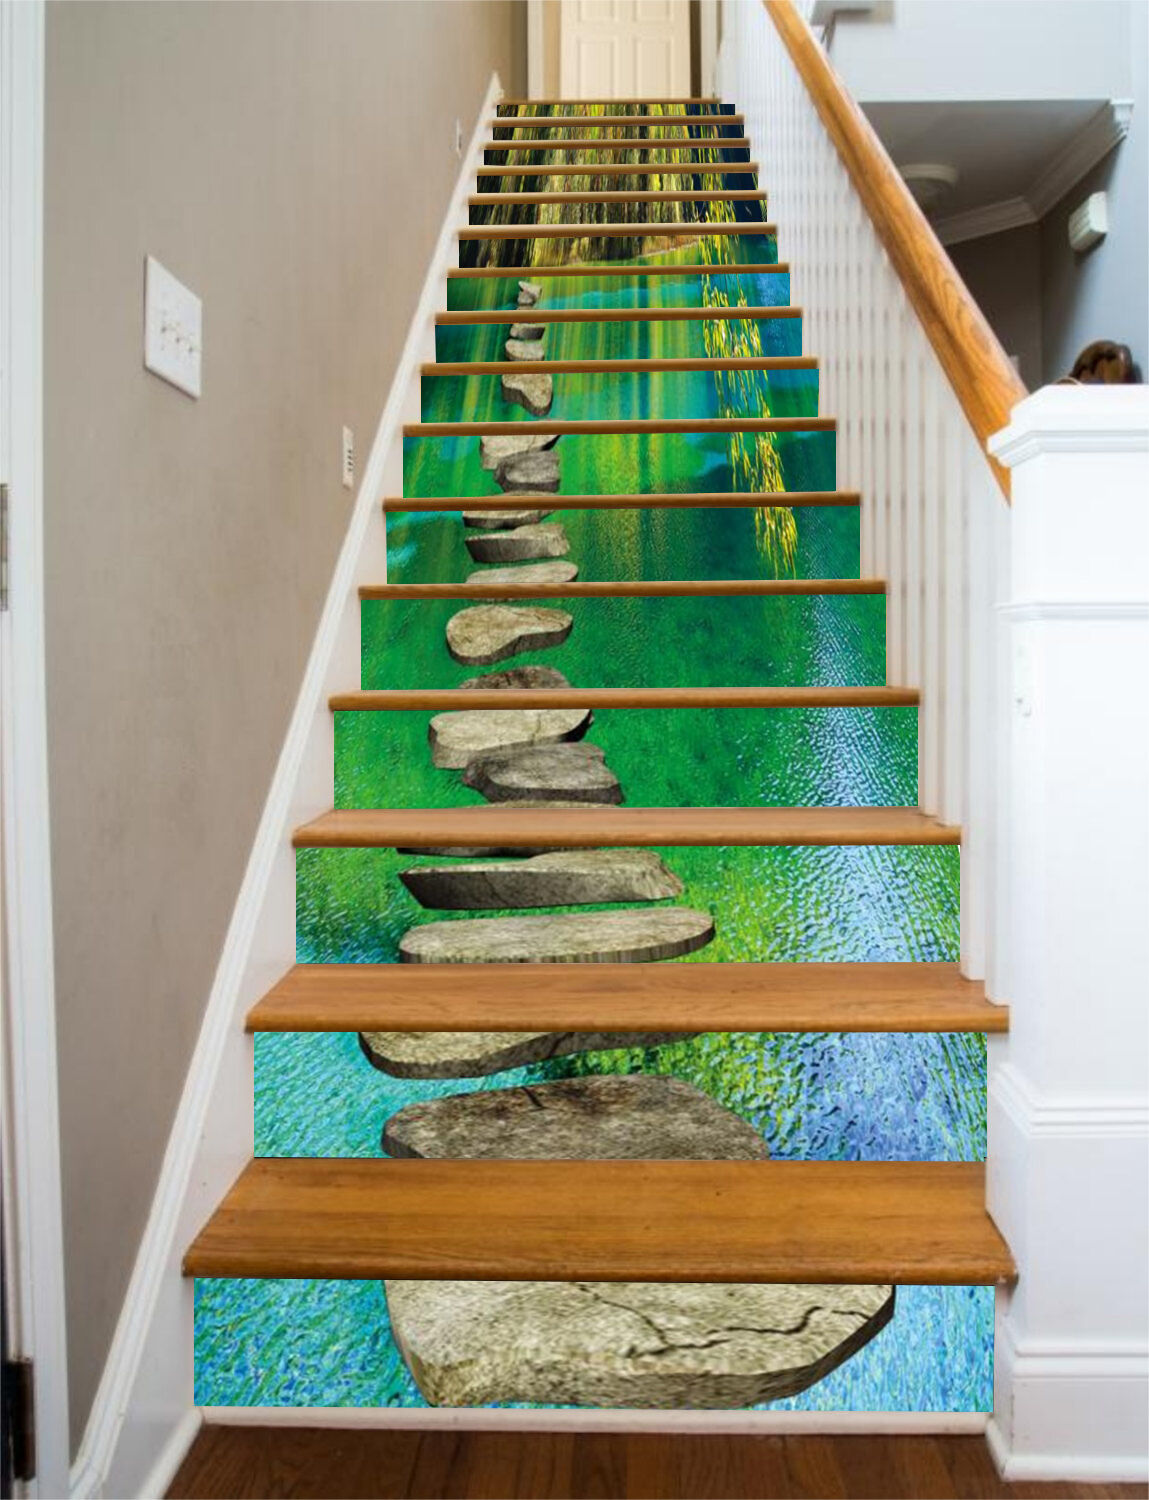 3D River, stone Stair Risers Decoration Photo Mural Vinyl Decal Wallpaper US